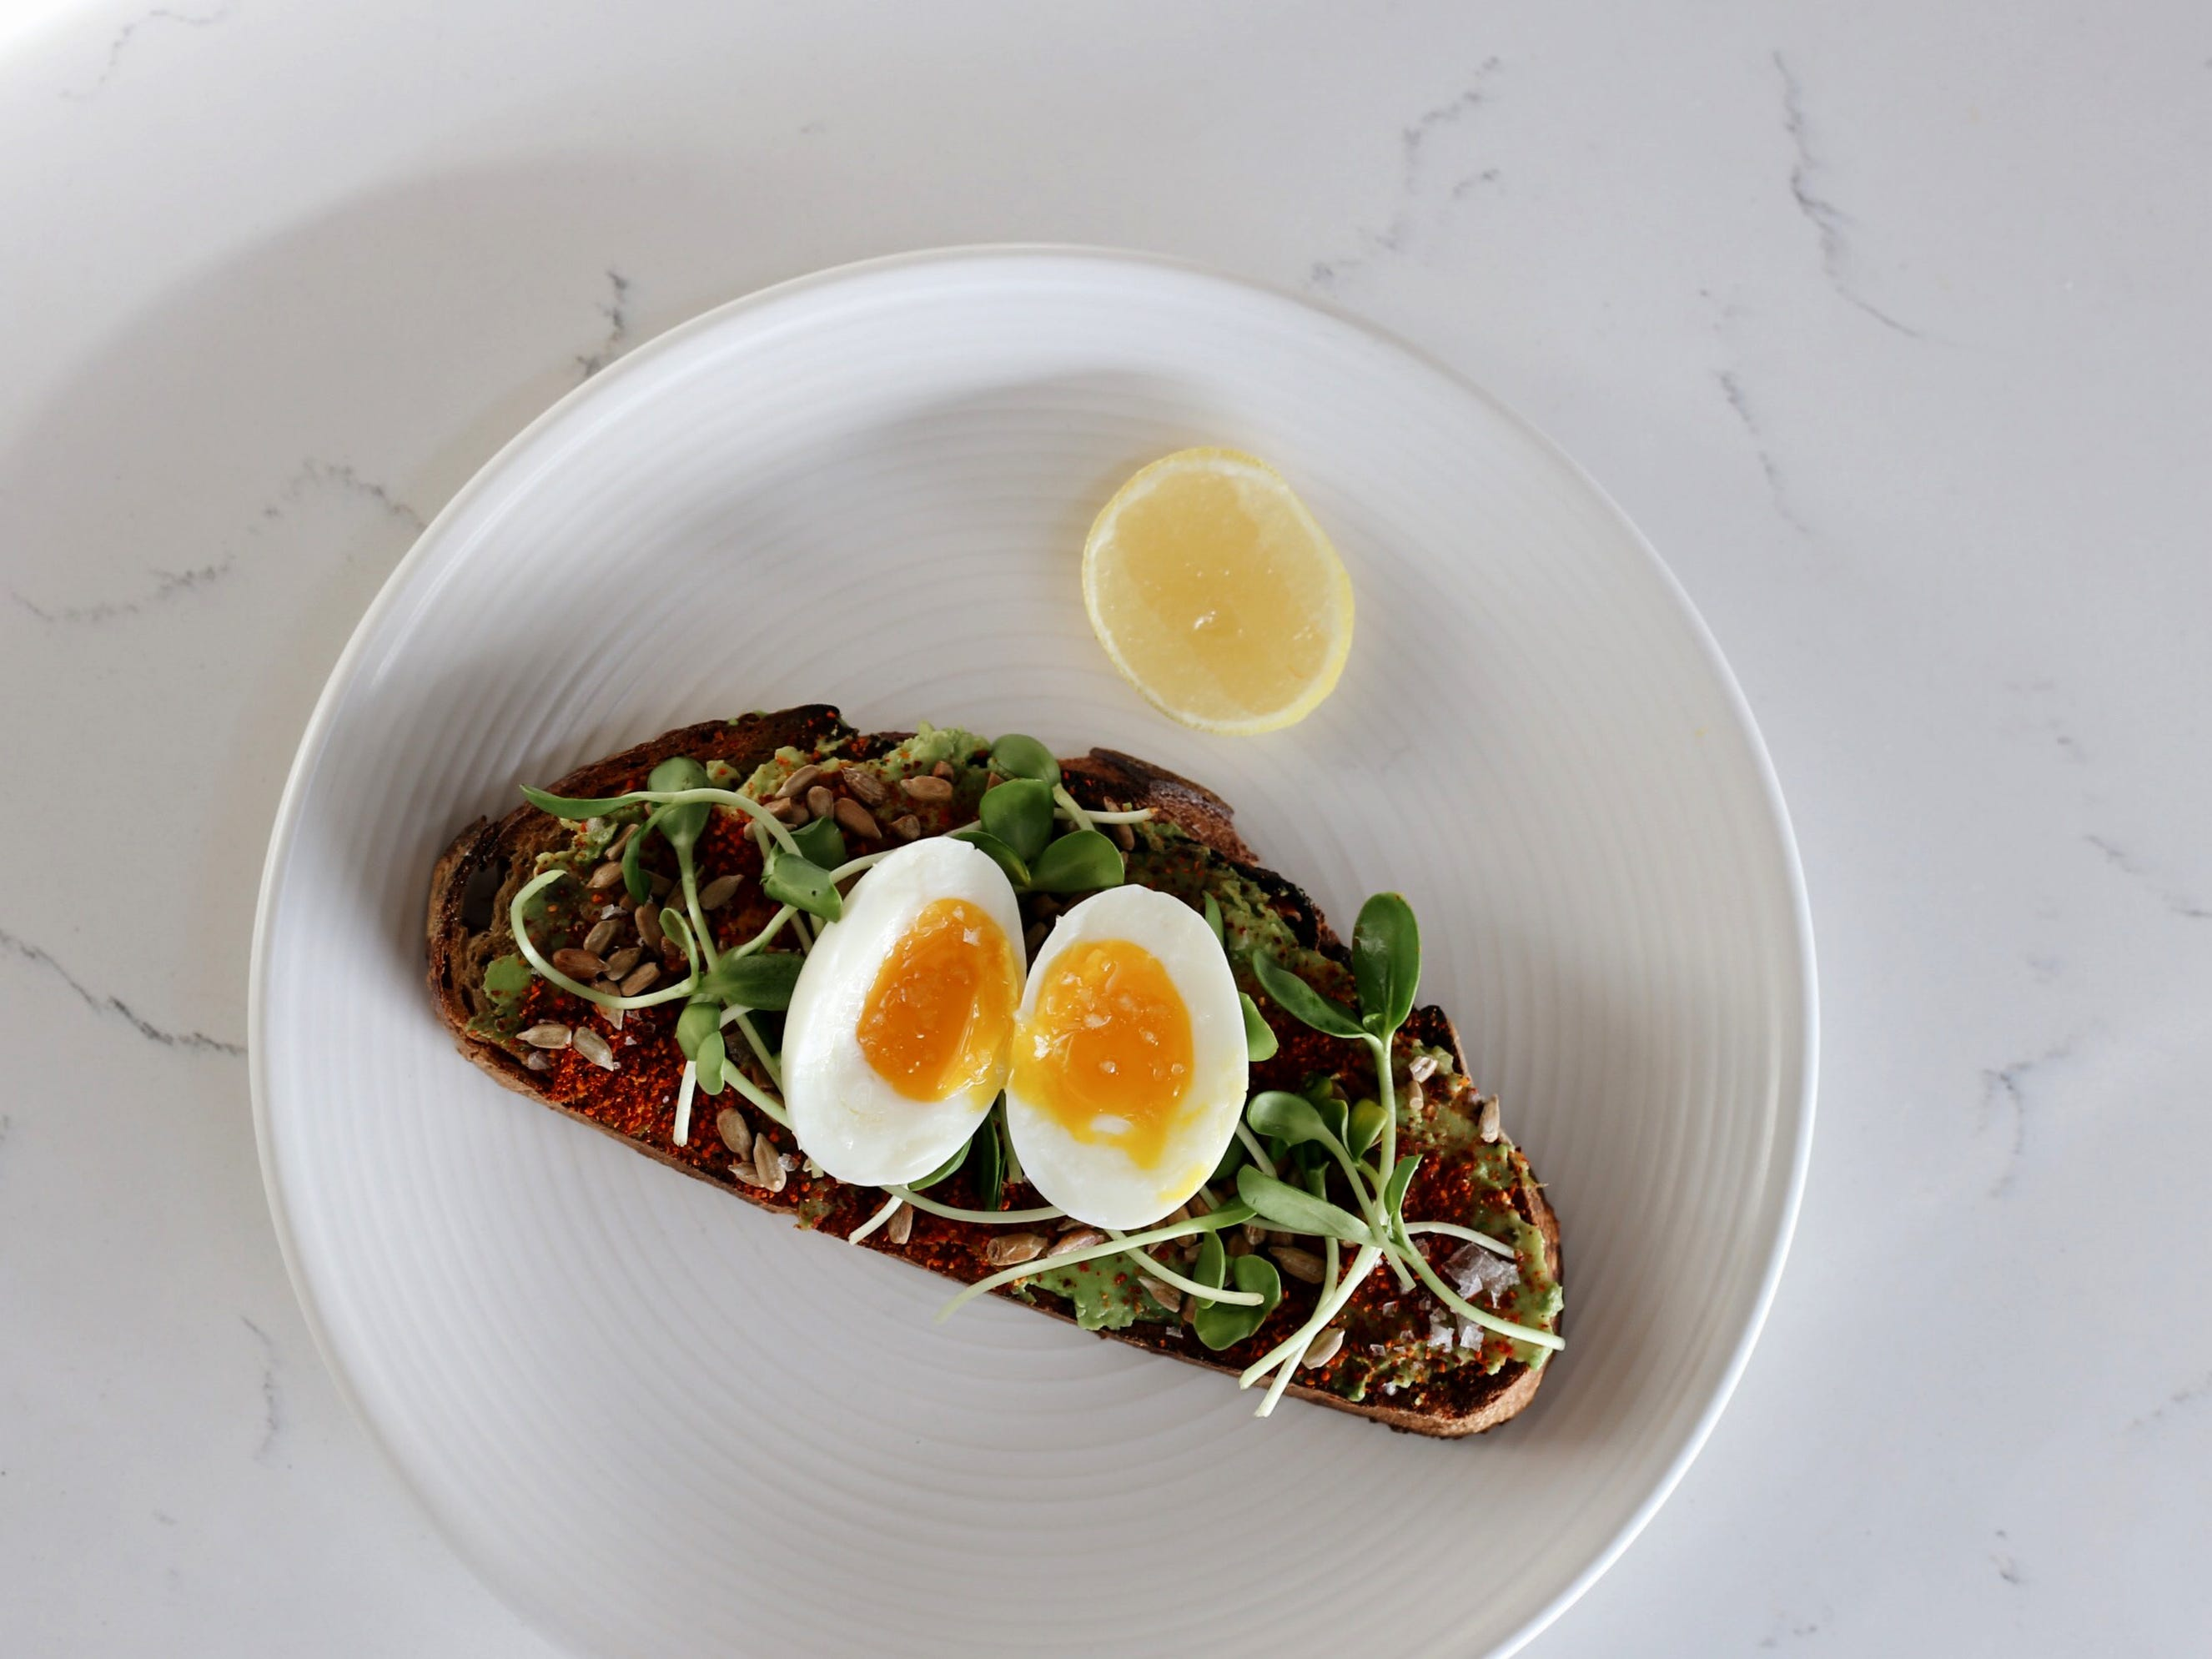 Avocado toast with soft boiled egg at Stay Golden restaurant and roastery.